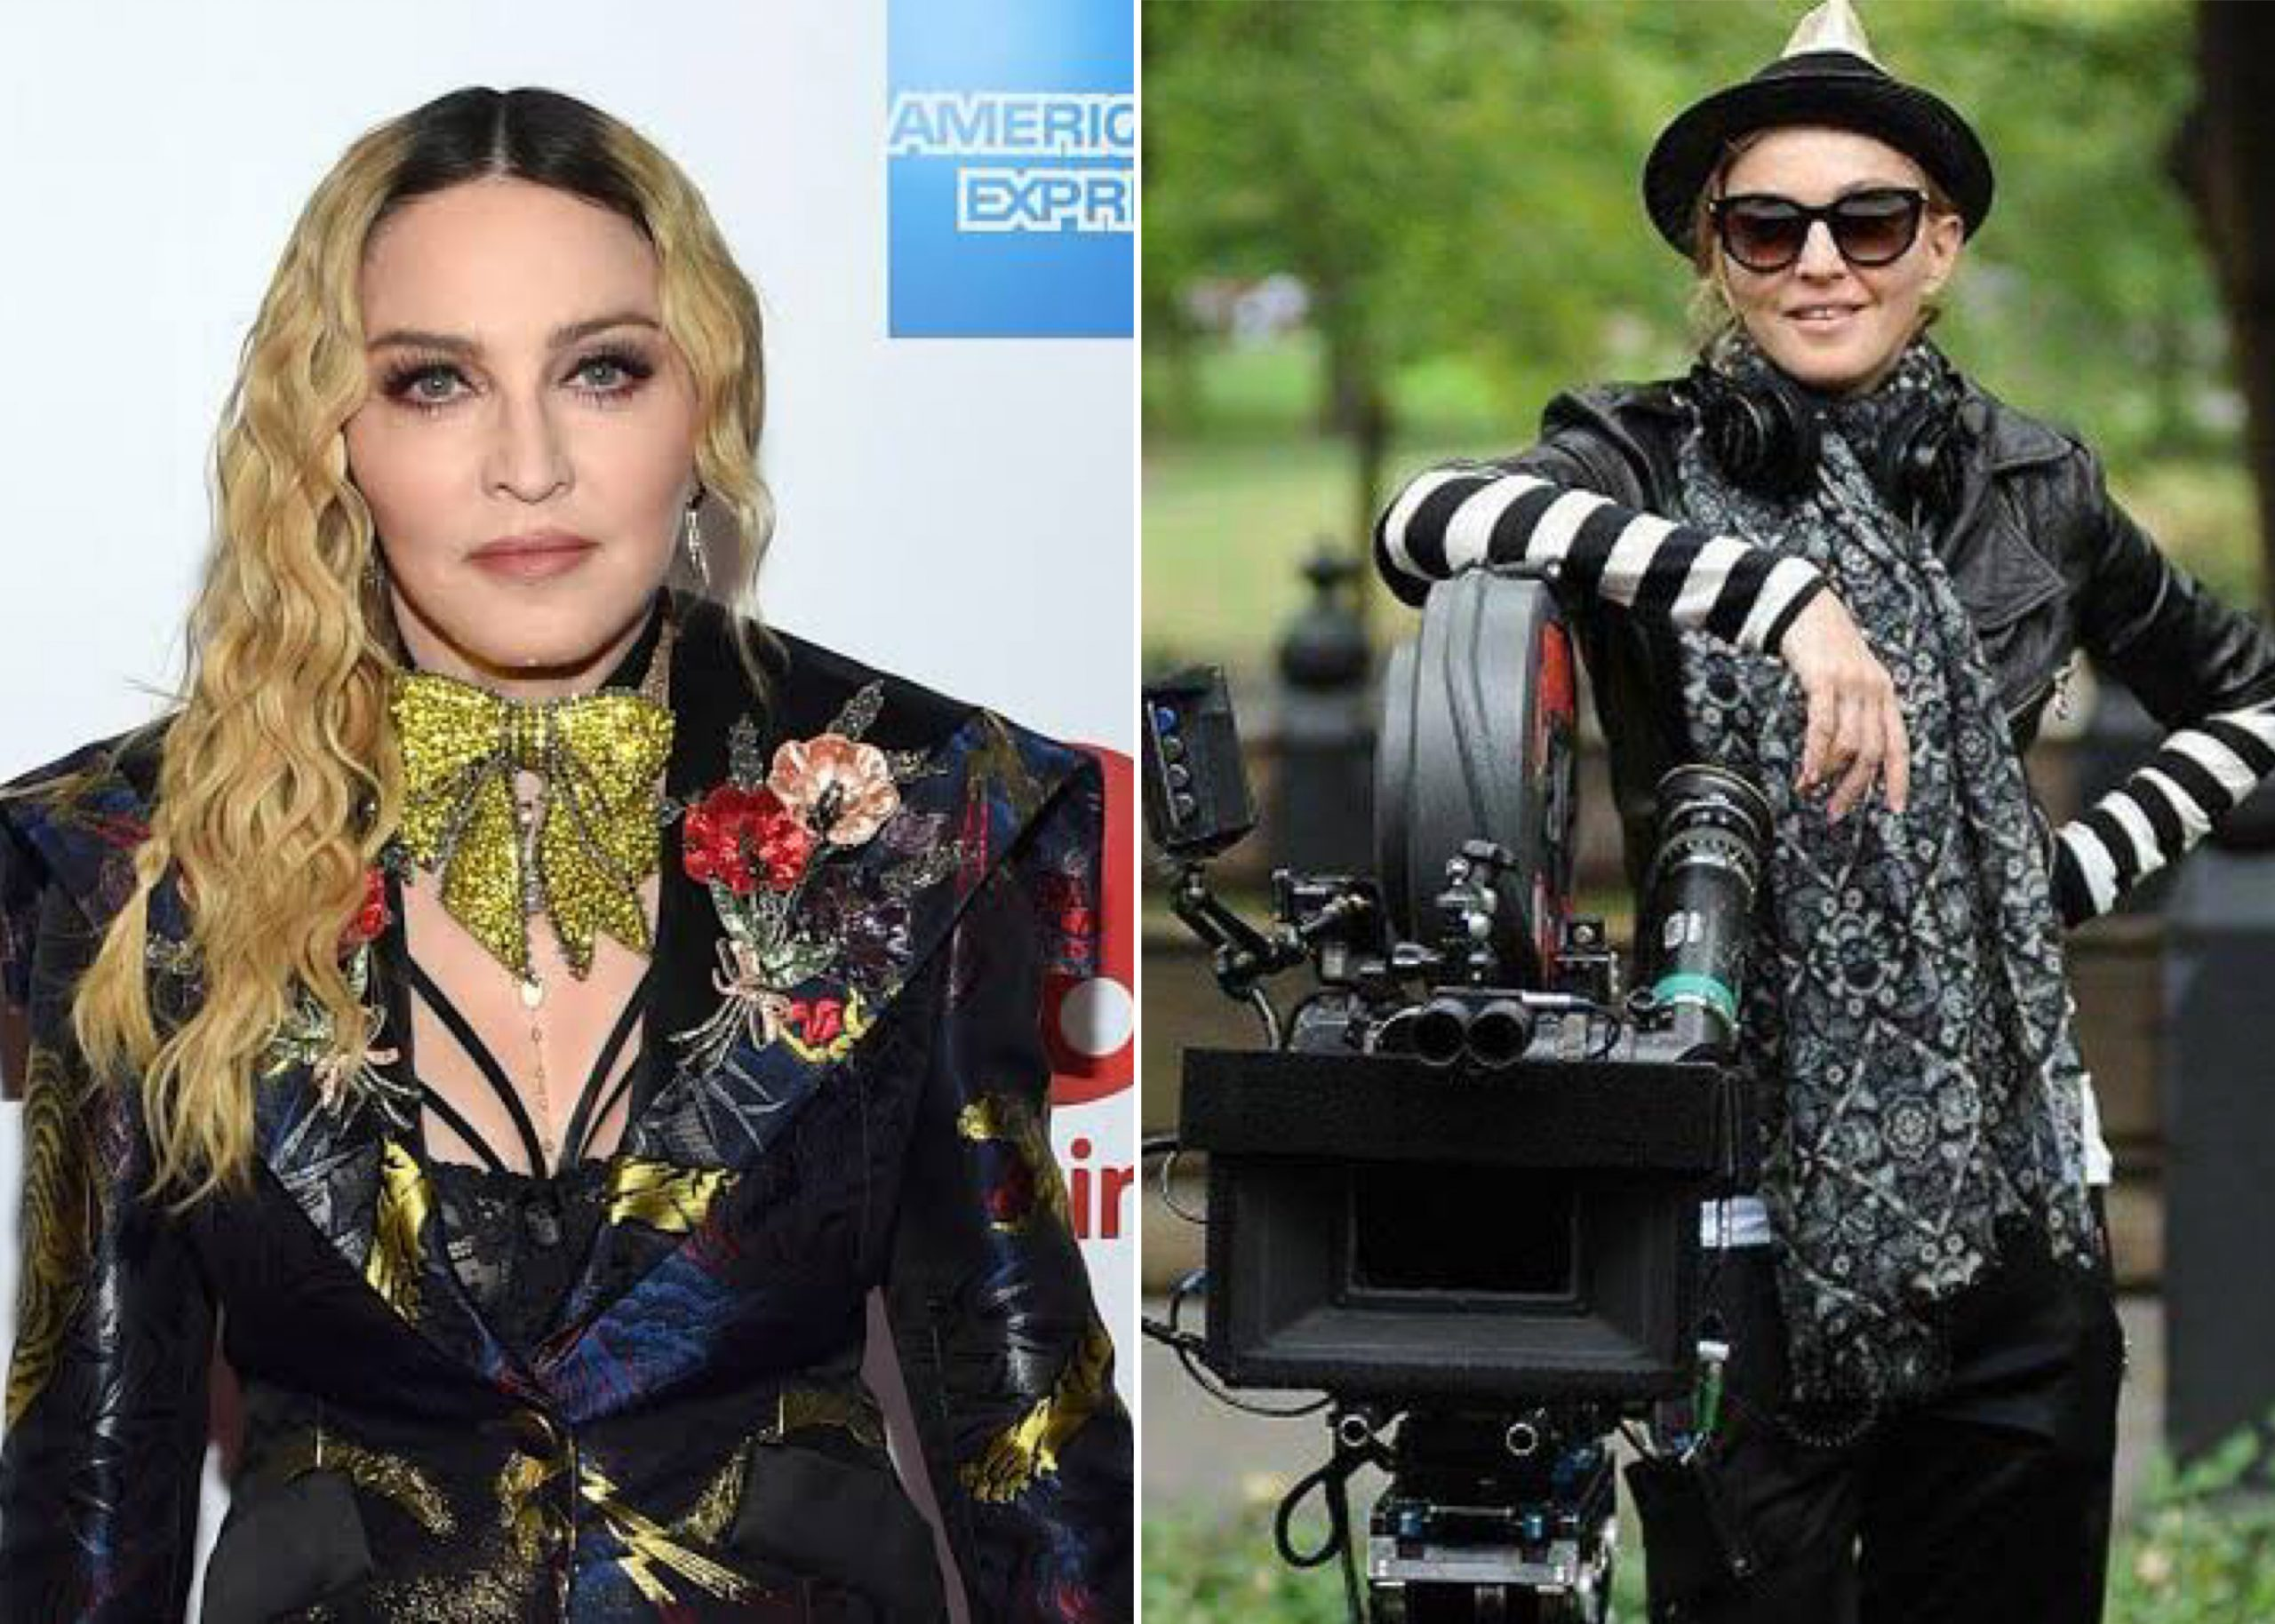 Madonna To Direct, Co-Write Her Own Biopic